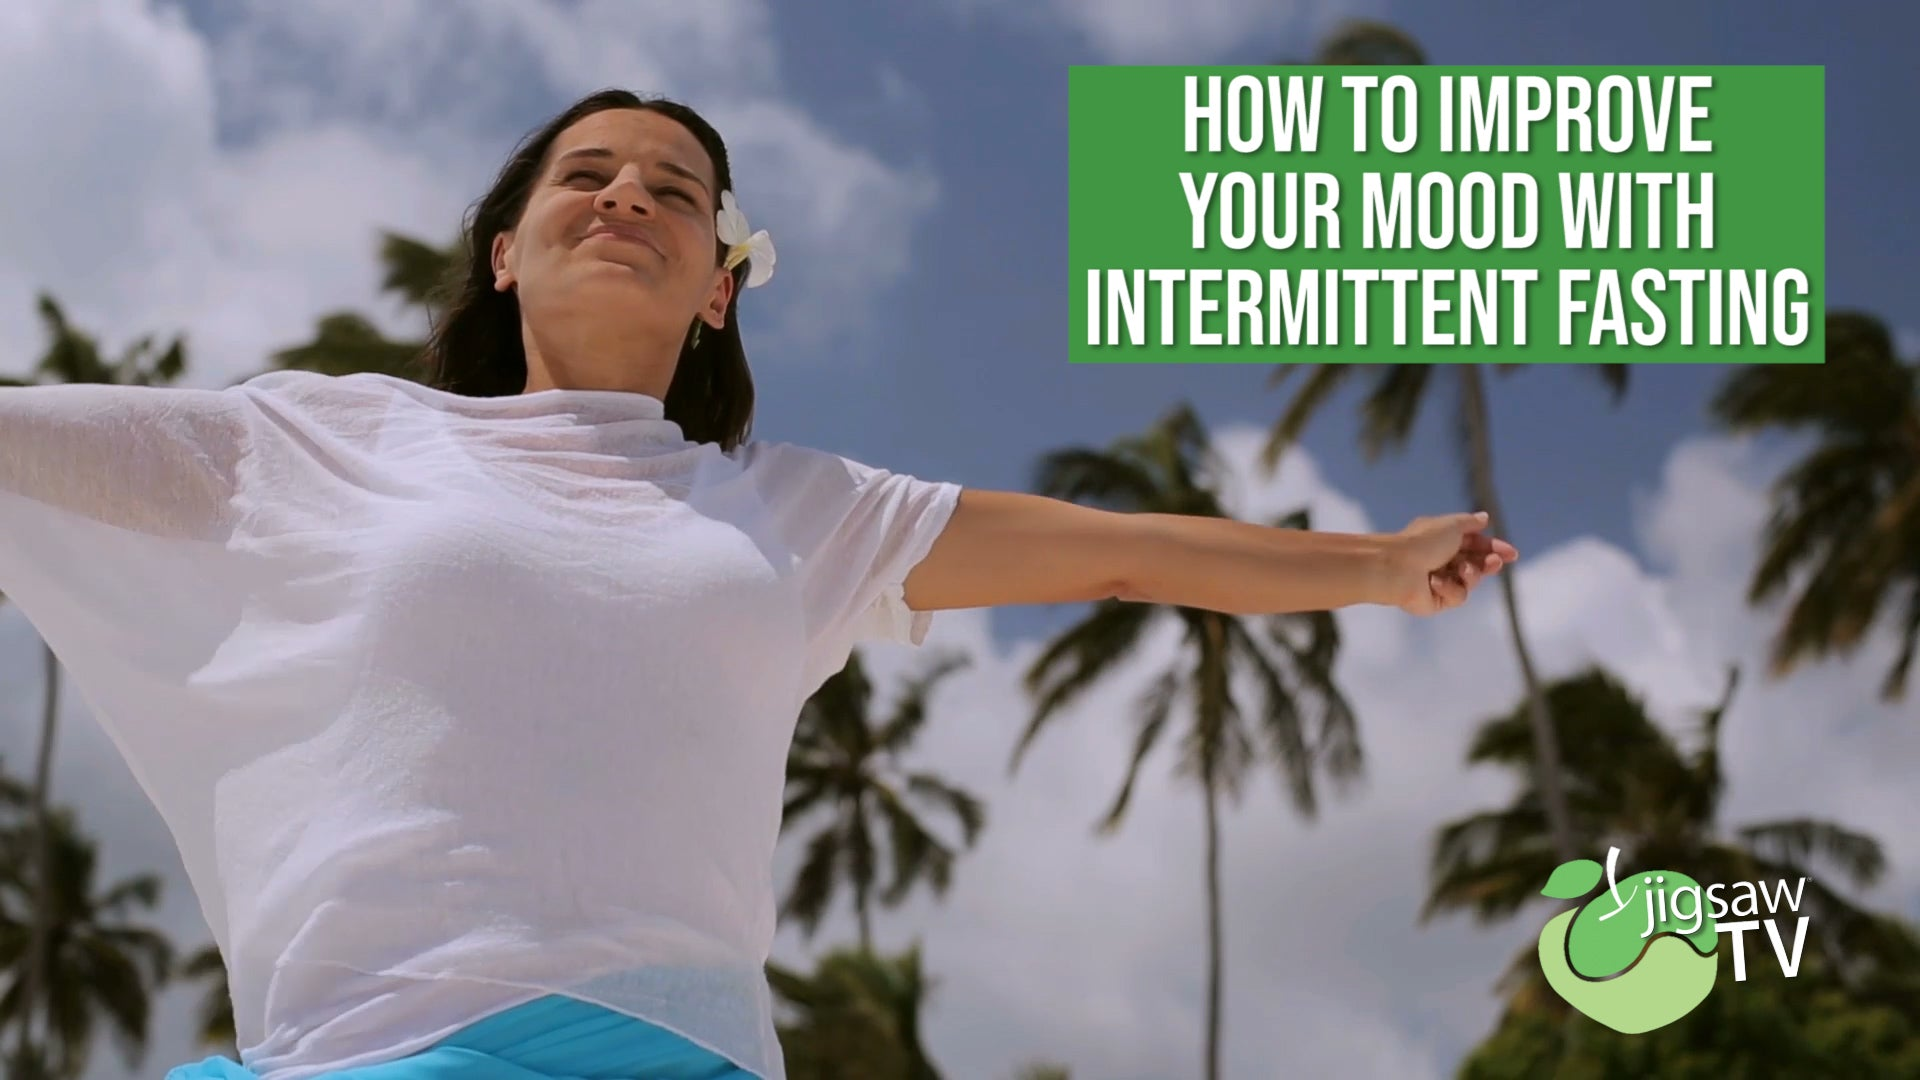 How to Improve Your Mood with Intermittent Fasting | #ScienceSaturday